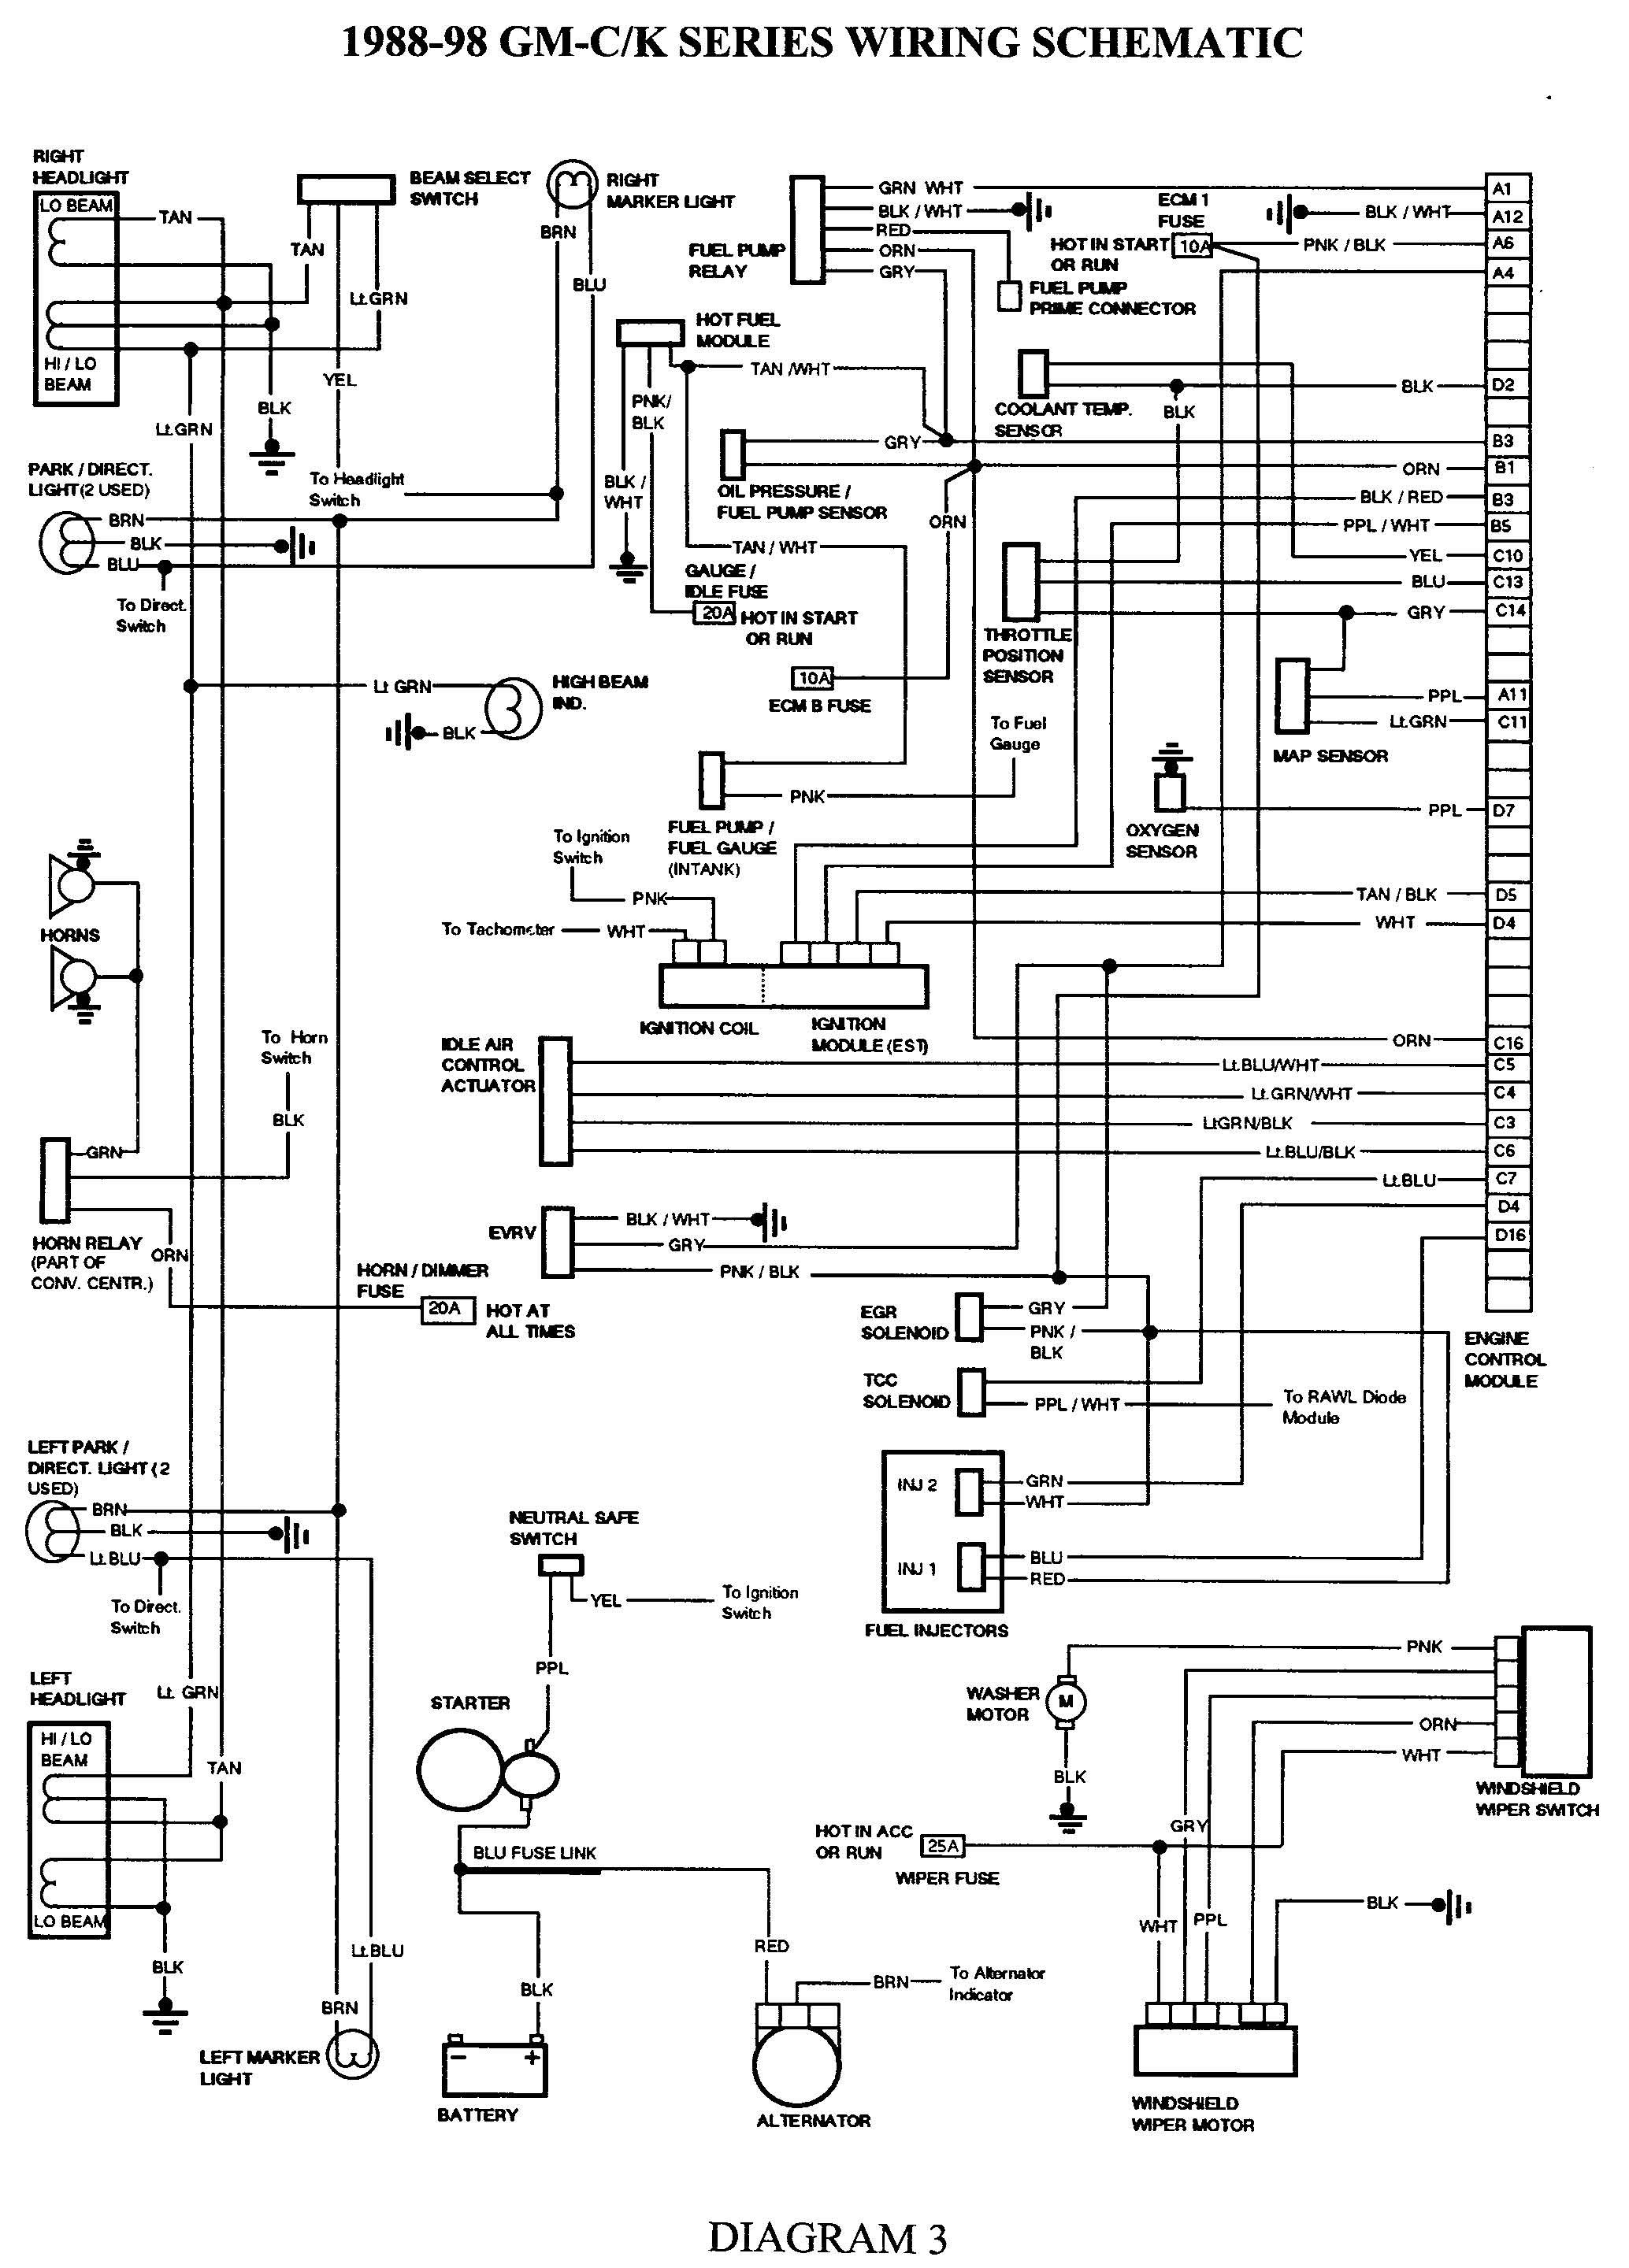 gmc truck wiring diagrams on gm wiring harness diagram 88 98 kc chevy suburban factory radio wiring diagram gmc truck wiring diagrams on gm wiring harness diagram 88 98